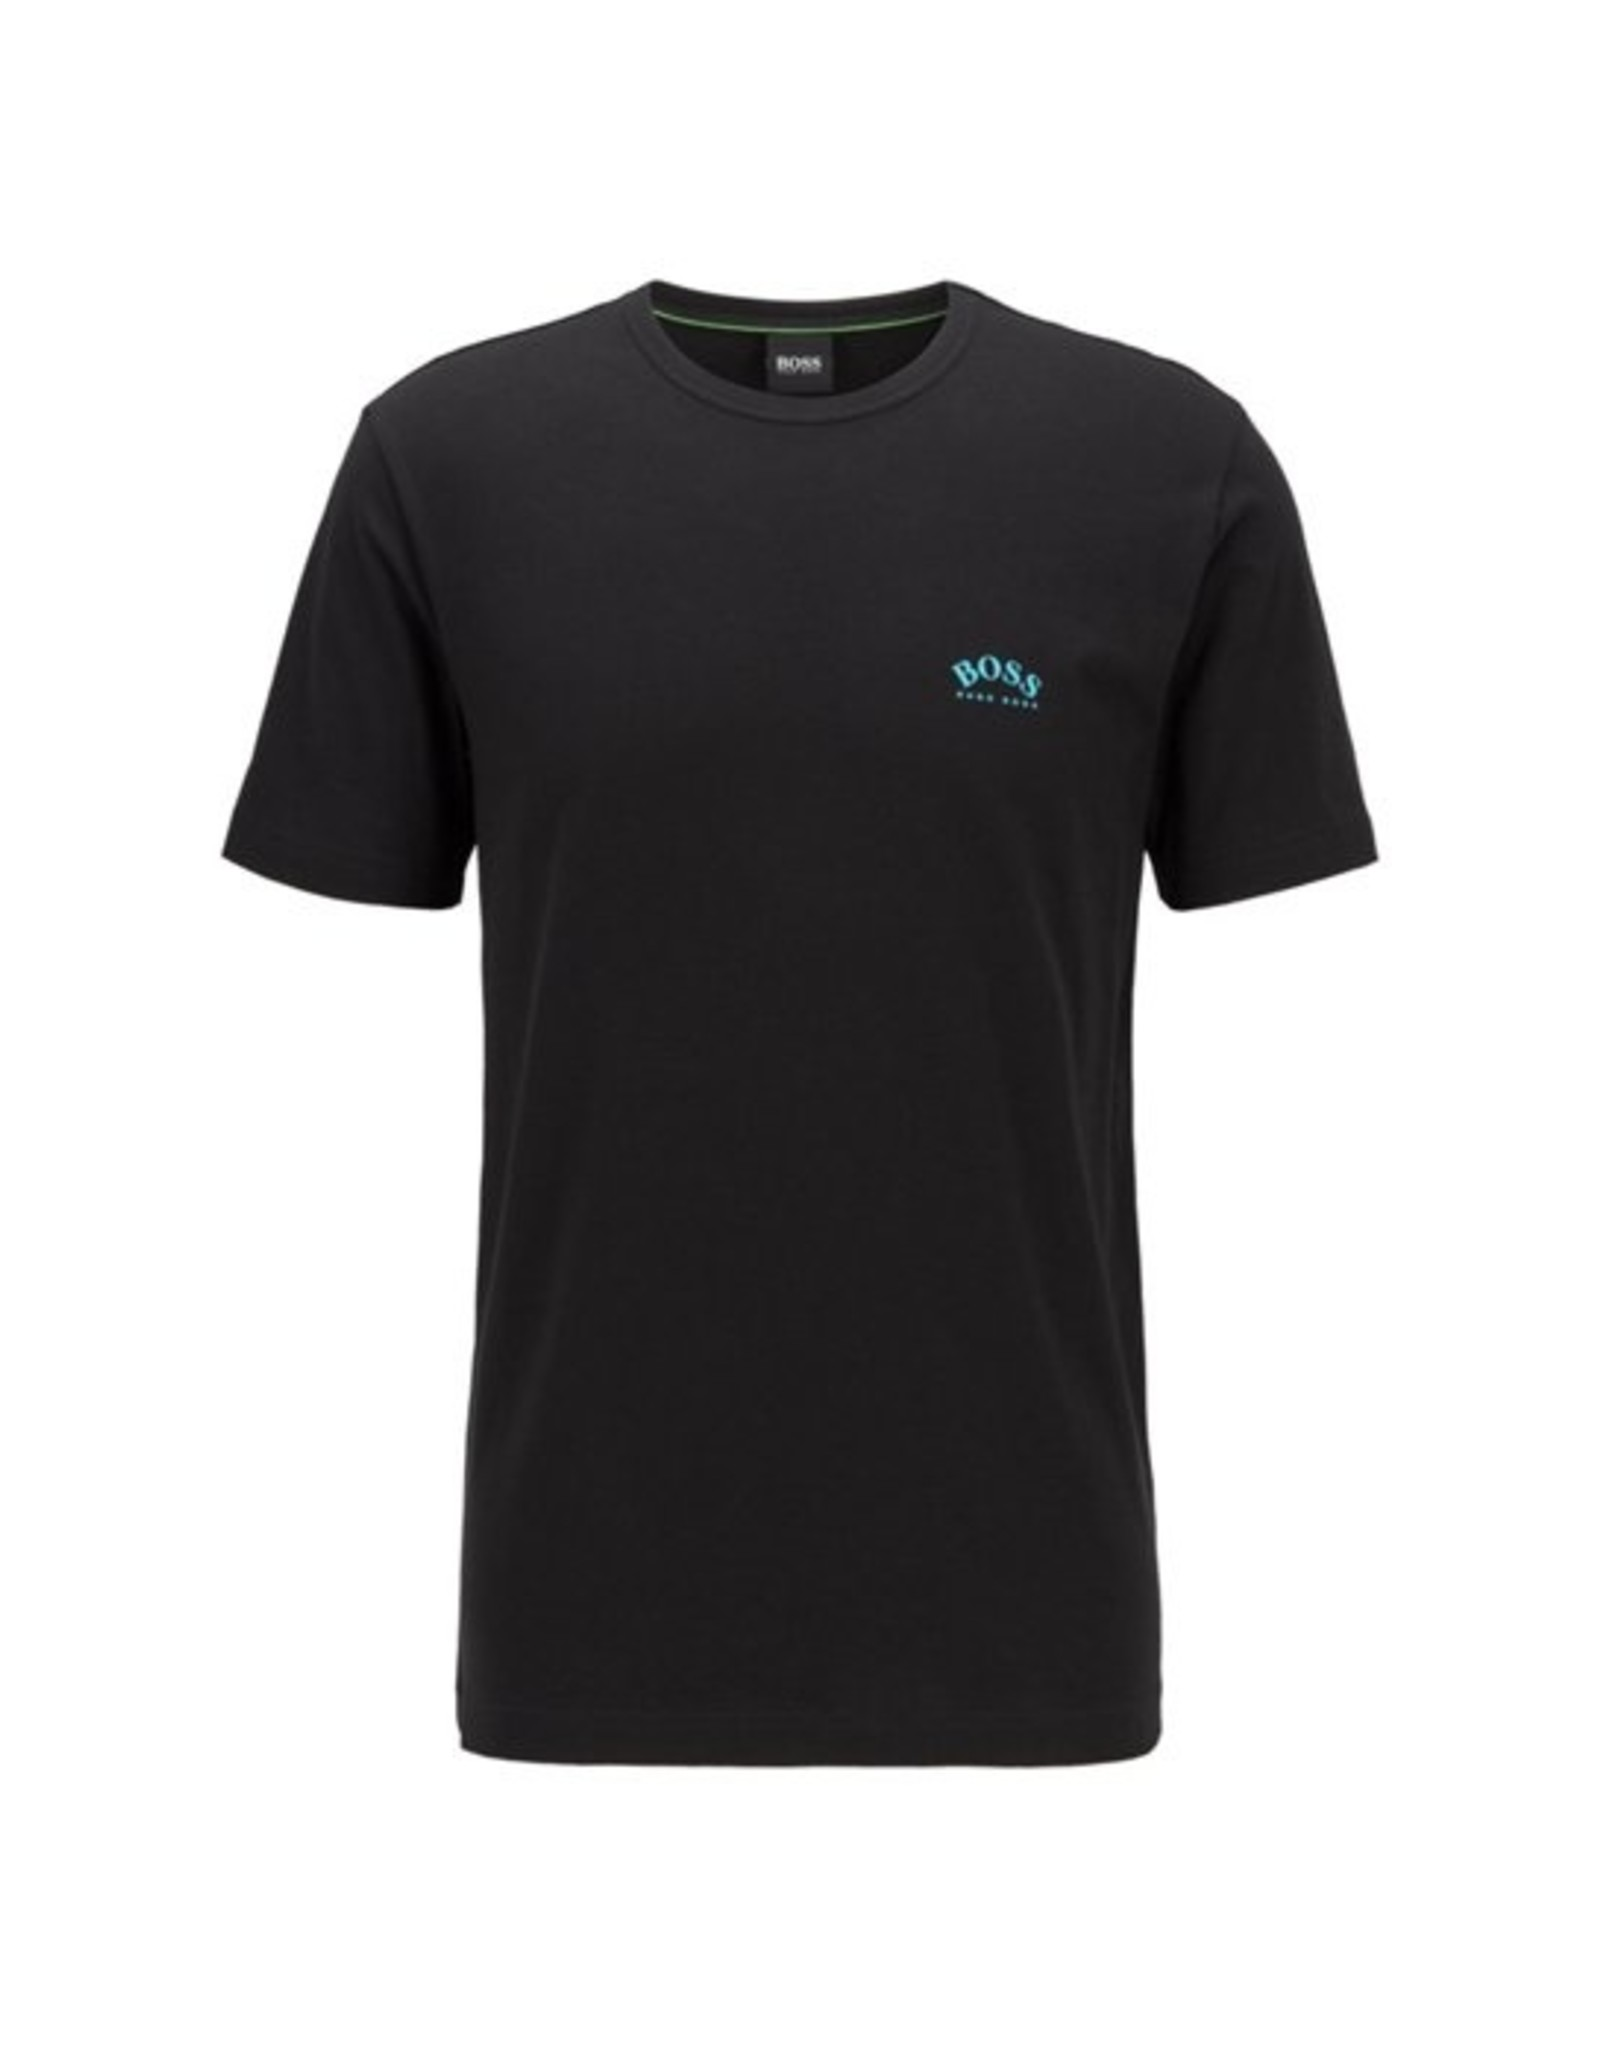 BOSS ATHLEISURE BOSS ATHLEISURE TEE CURVED